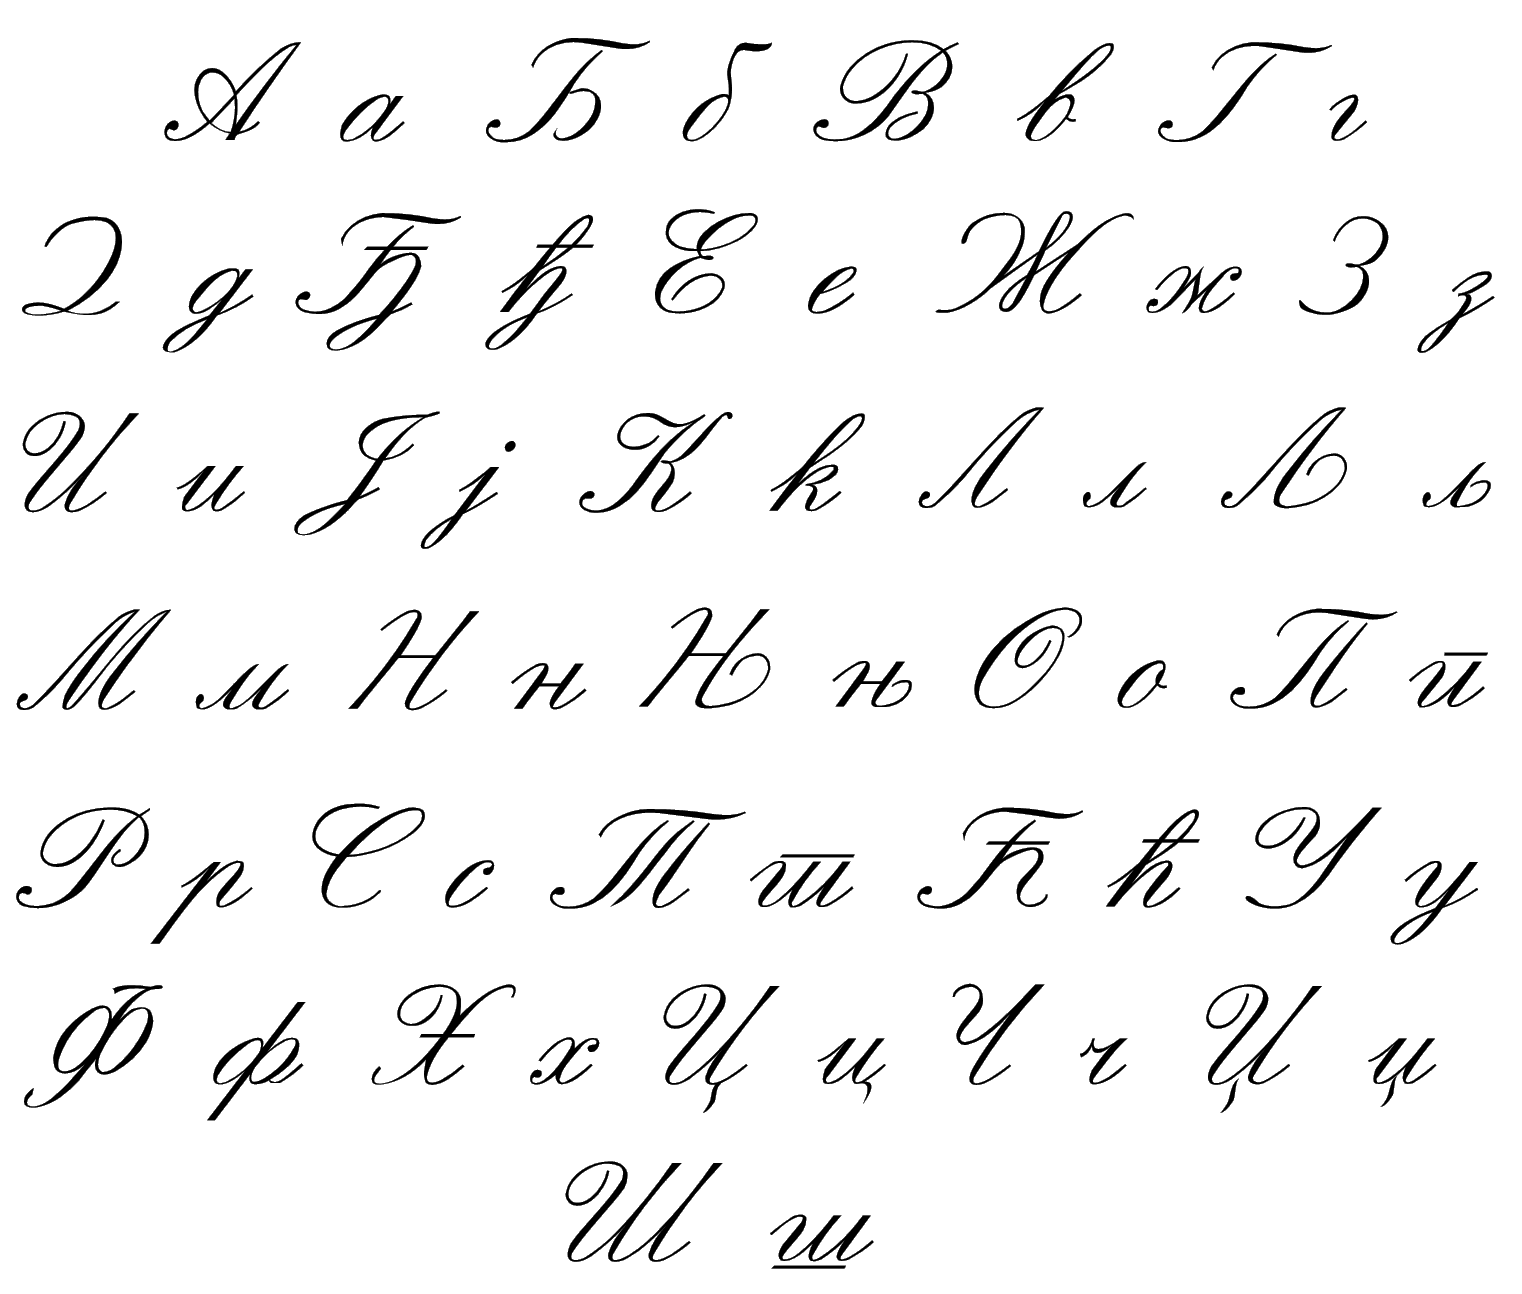 FileSerbian writing style around 1900, now partially